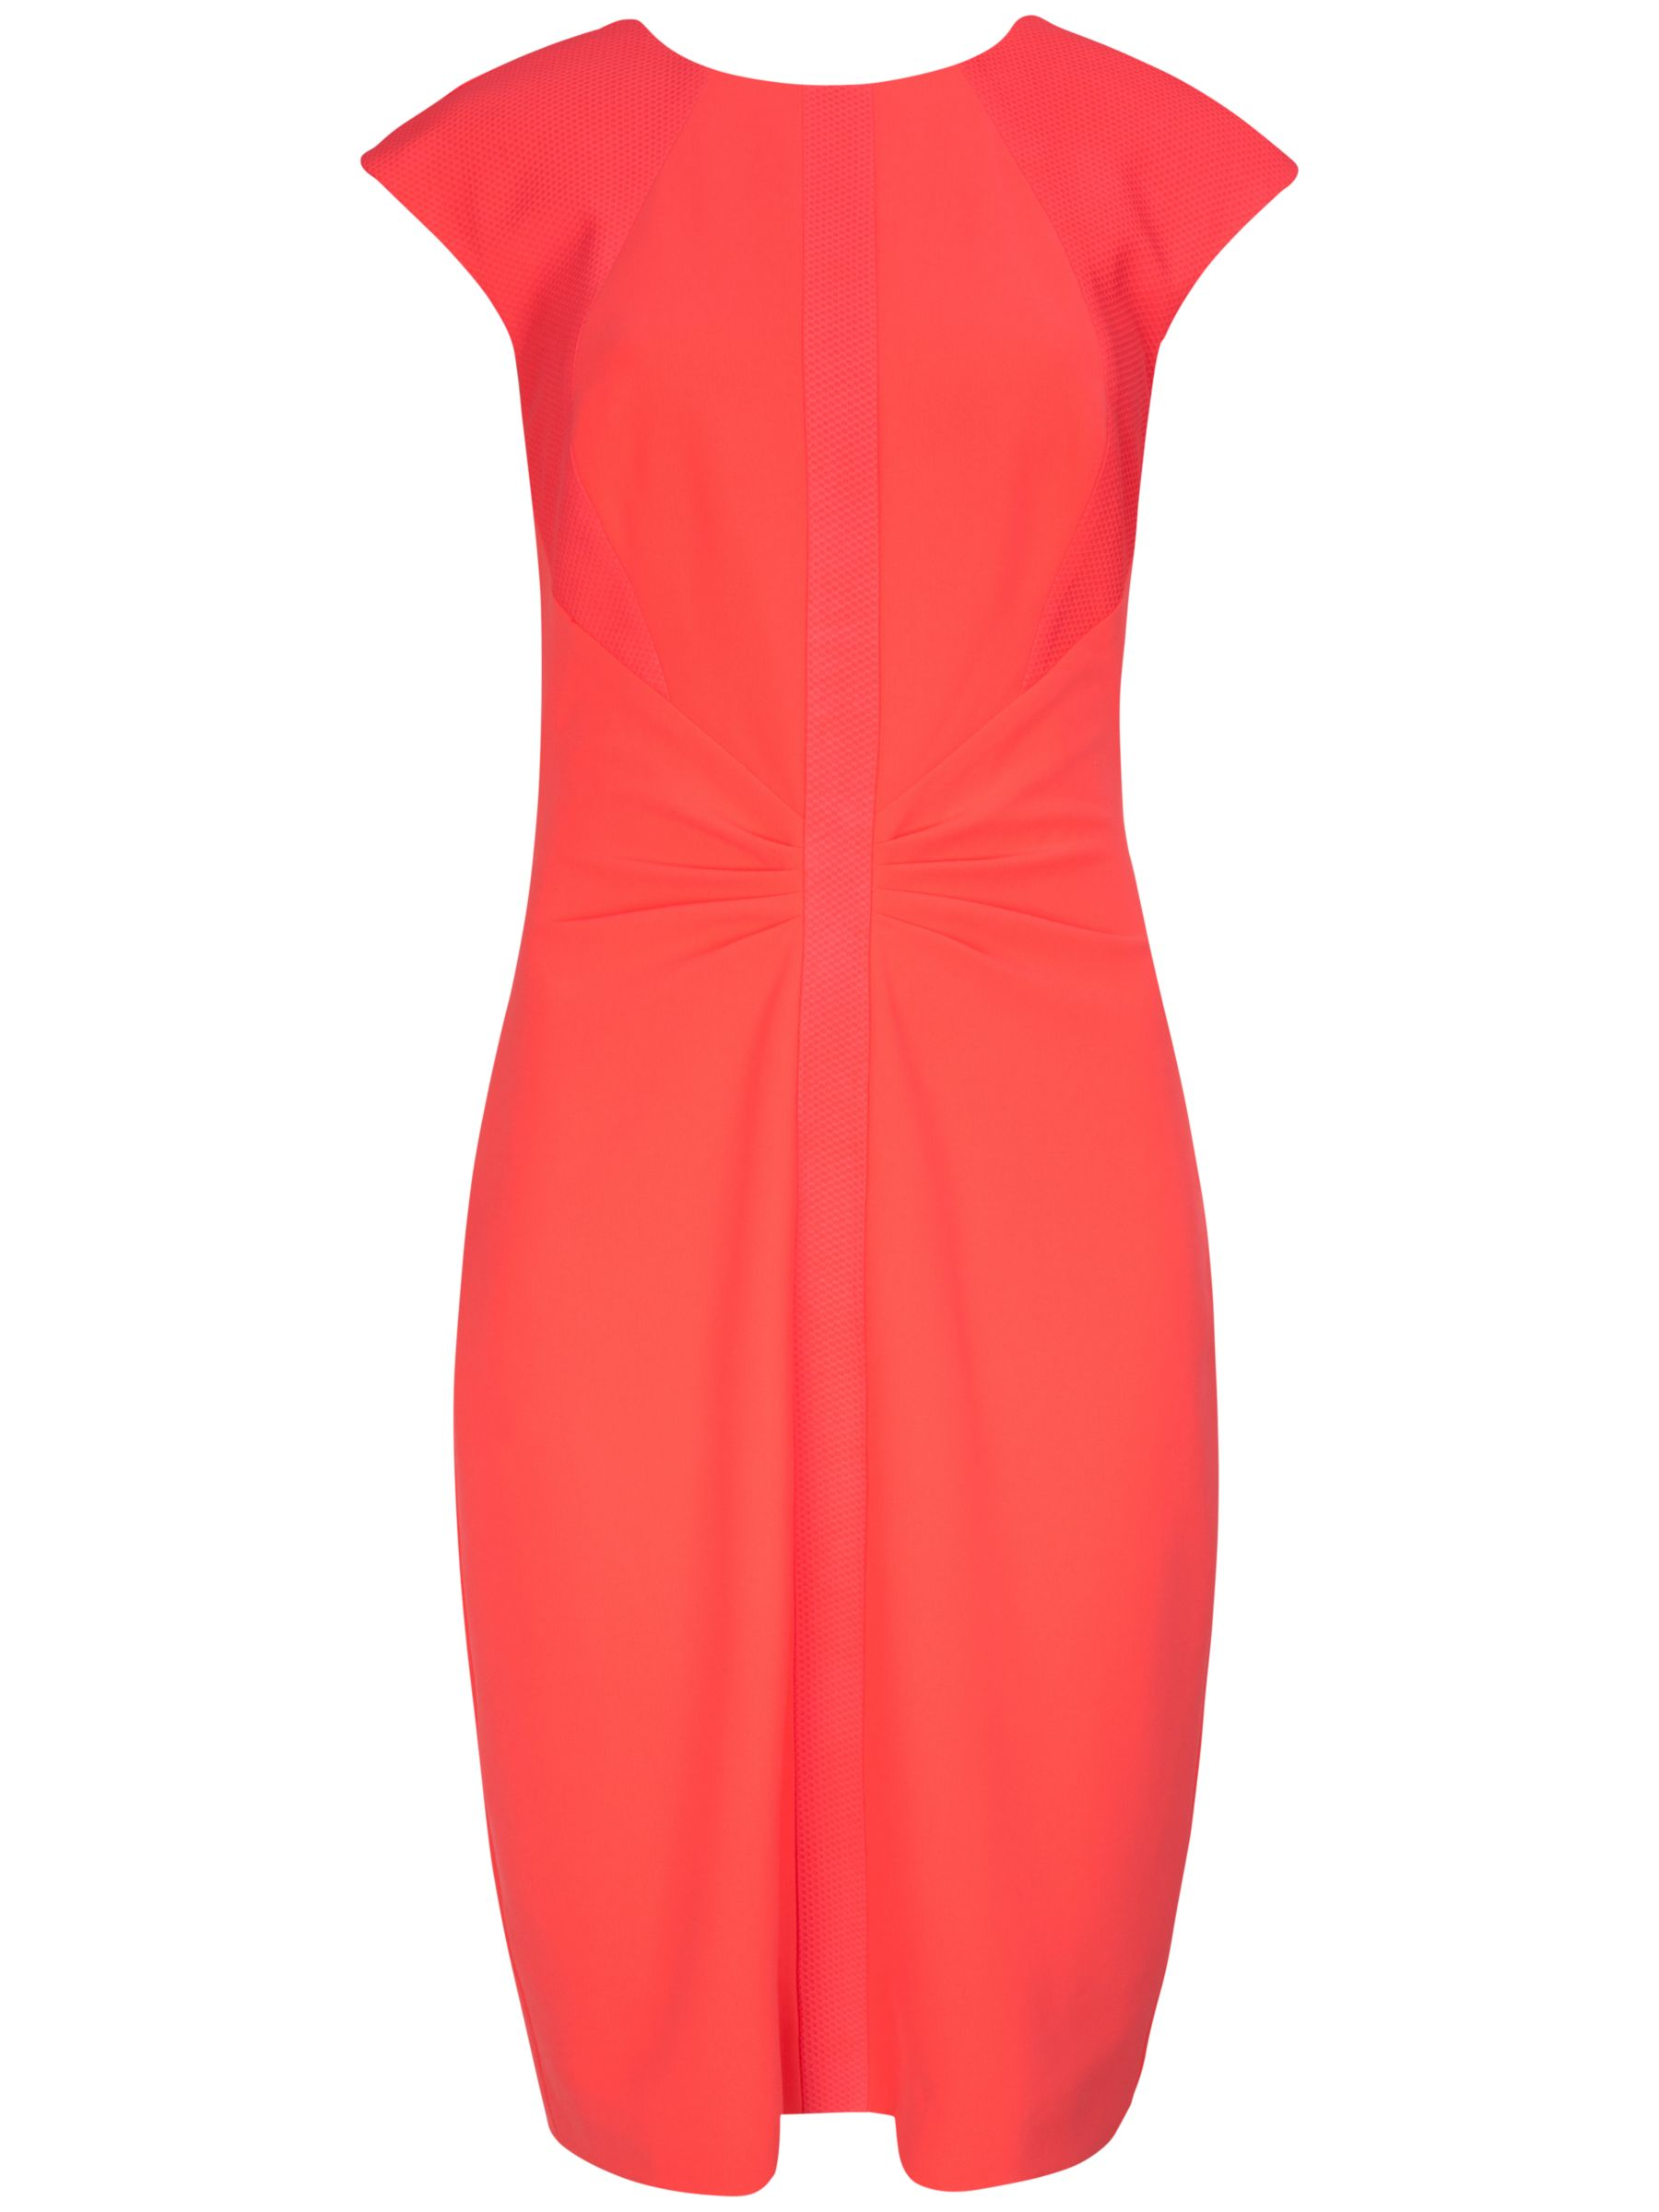 ted baker acerola mesh panel dress mid orange, ted, baker, acerola, mesh, panel, dress, mid, orange, ted baker, 0|2|5|1|4|3, women, womens dresses, gifts, wedding, wedding clothing, female guests, fashion magazine, womenswear, men, brands l-z, 1929412